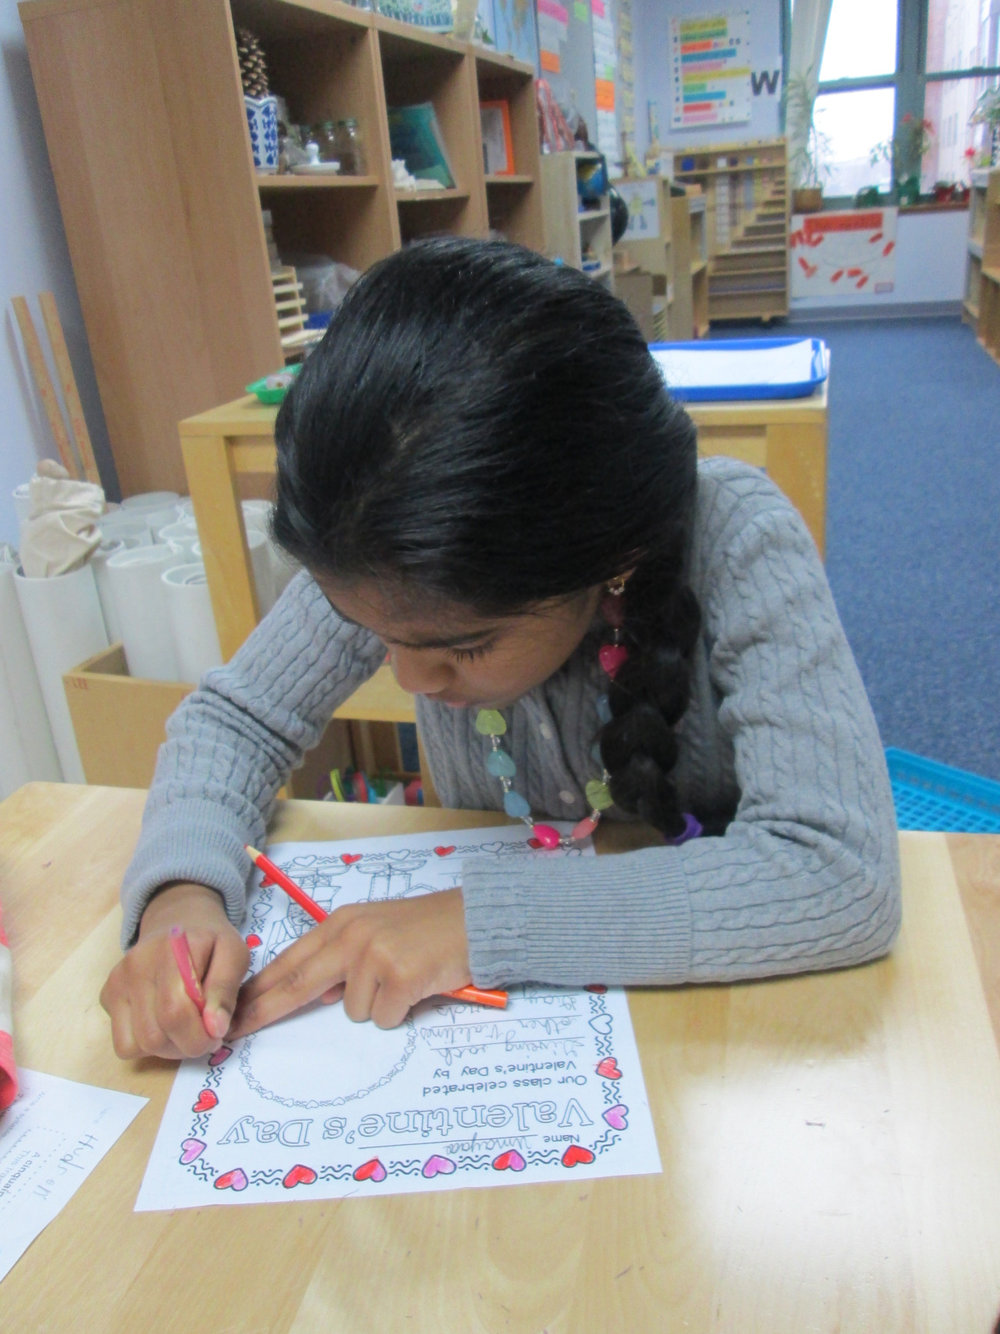 As part of their morning message, the Lower Elementary East students reflected on how they celebrated Valentine's Day in and out of the classroom.  Through various writing prompts, the students recalled events and traditions of the holiday.